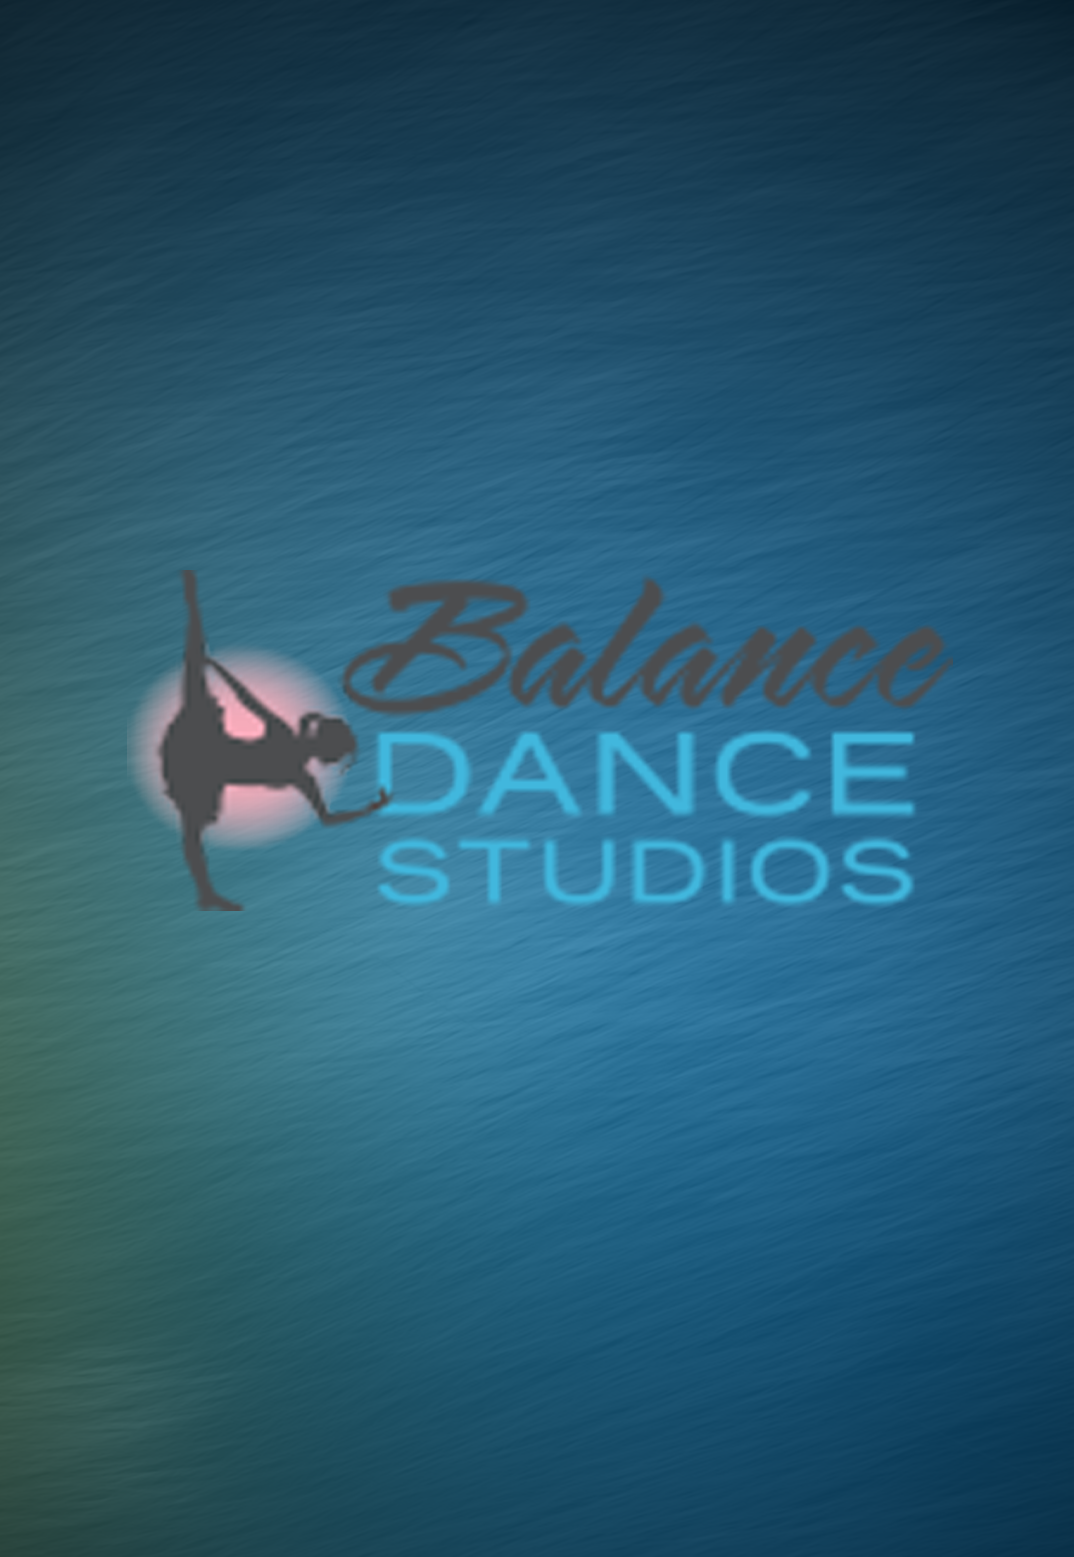 BALANCE DANCE STUDIO MAY 14, 2016 RECITAL ACT 2 ONLY